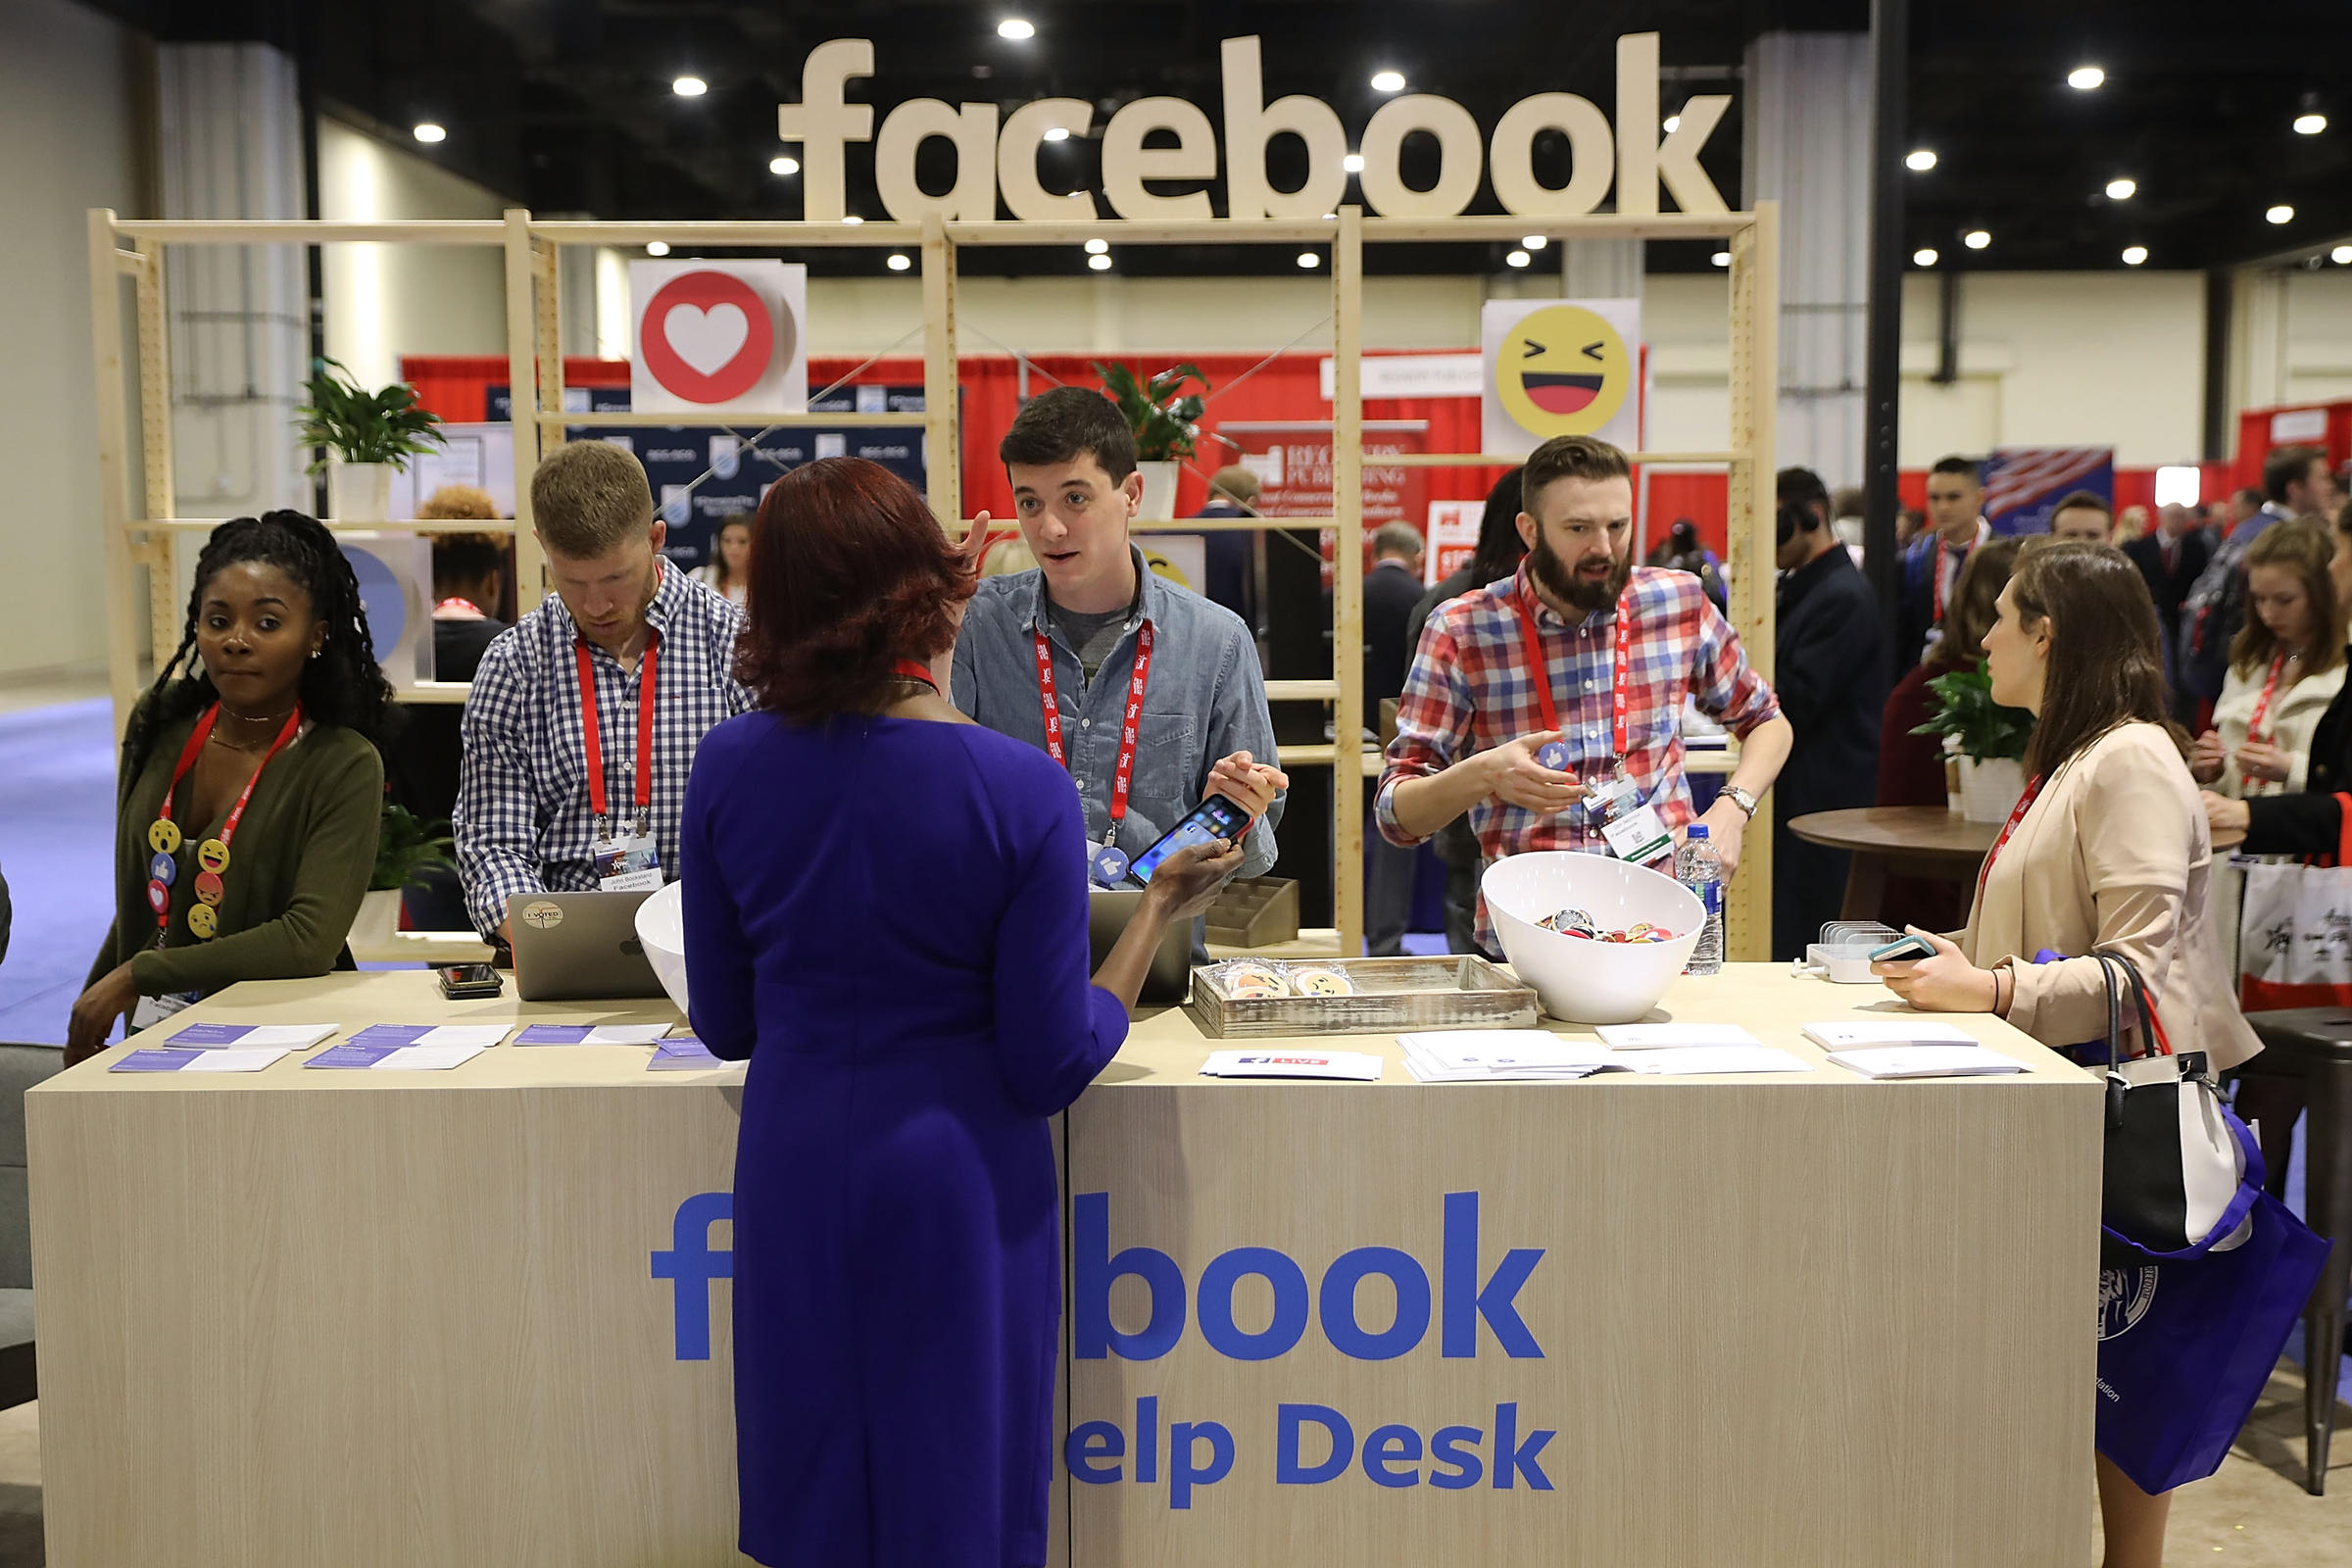 Attendees Visit The Facebook Help Desk Inside The Conservative Political  Action Conference Hub At The Gaylord